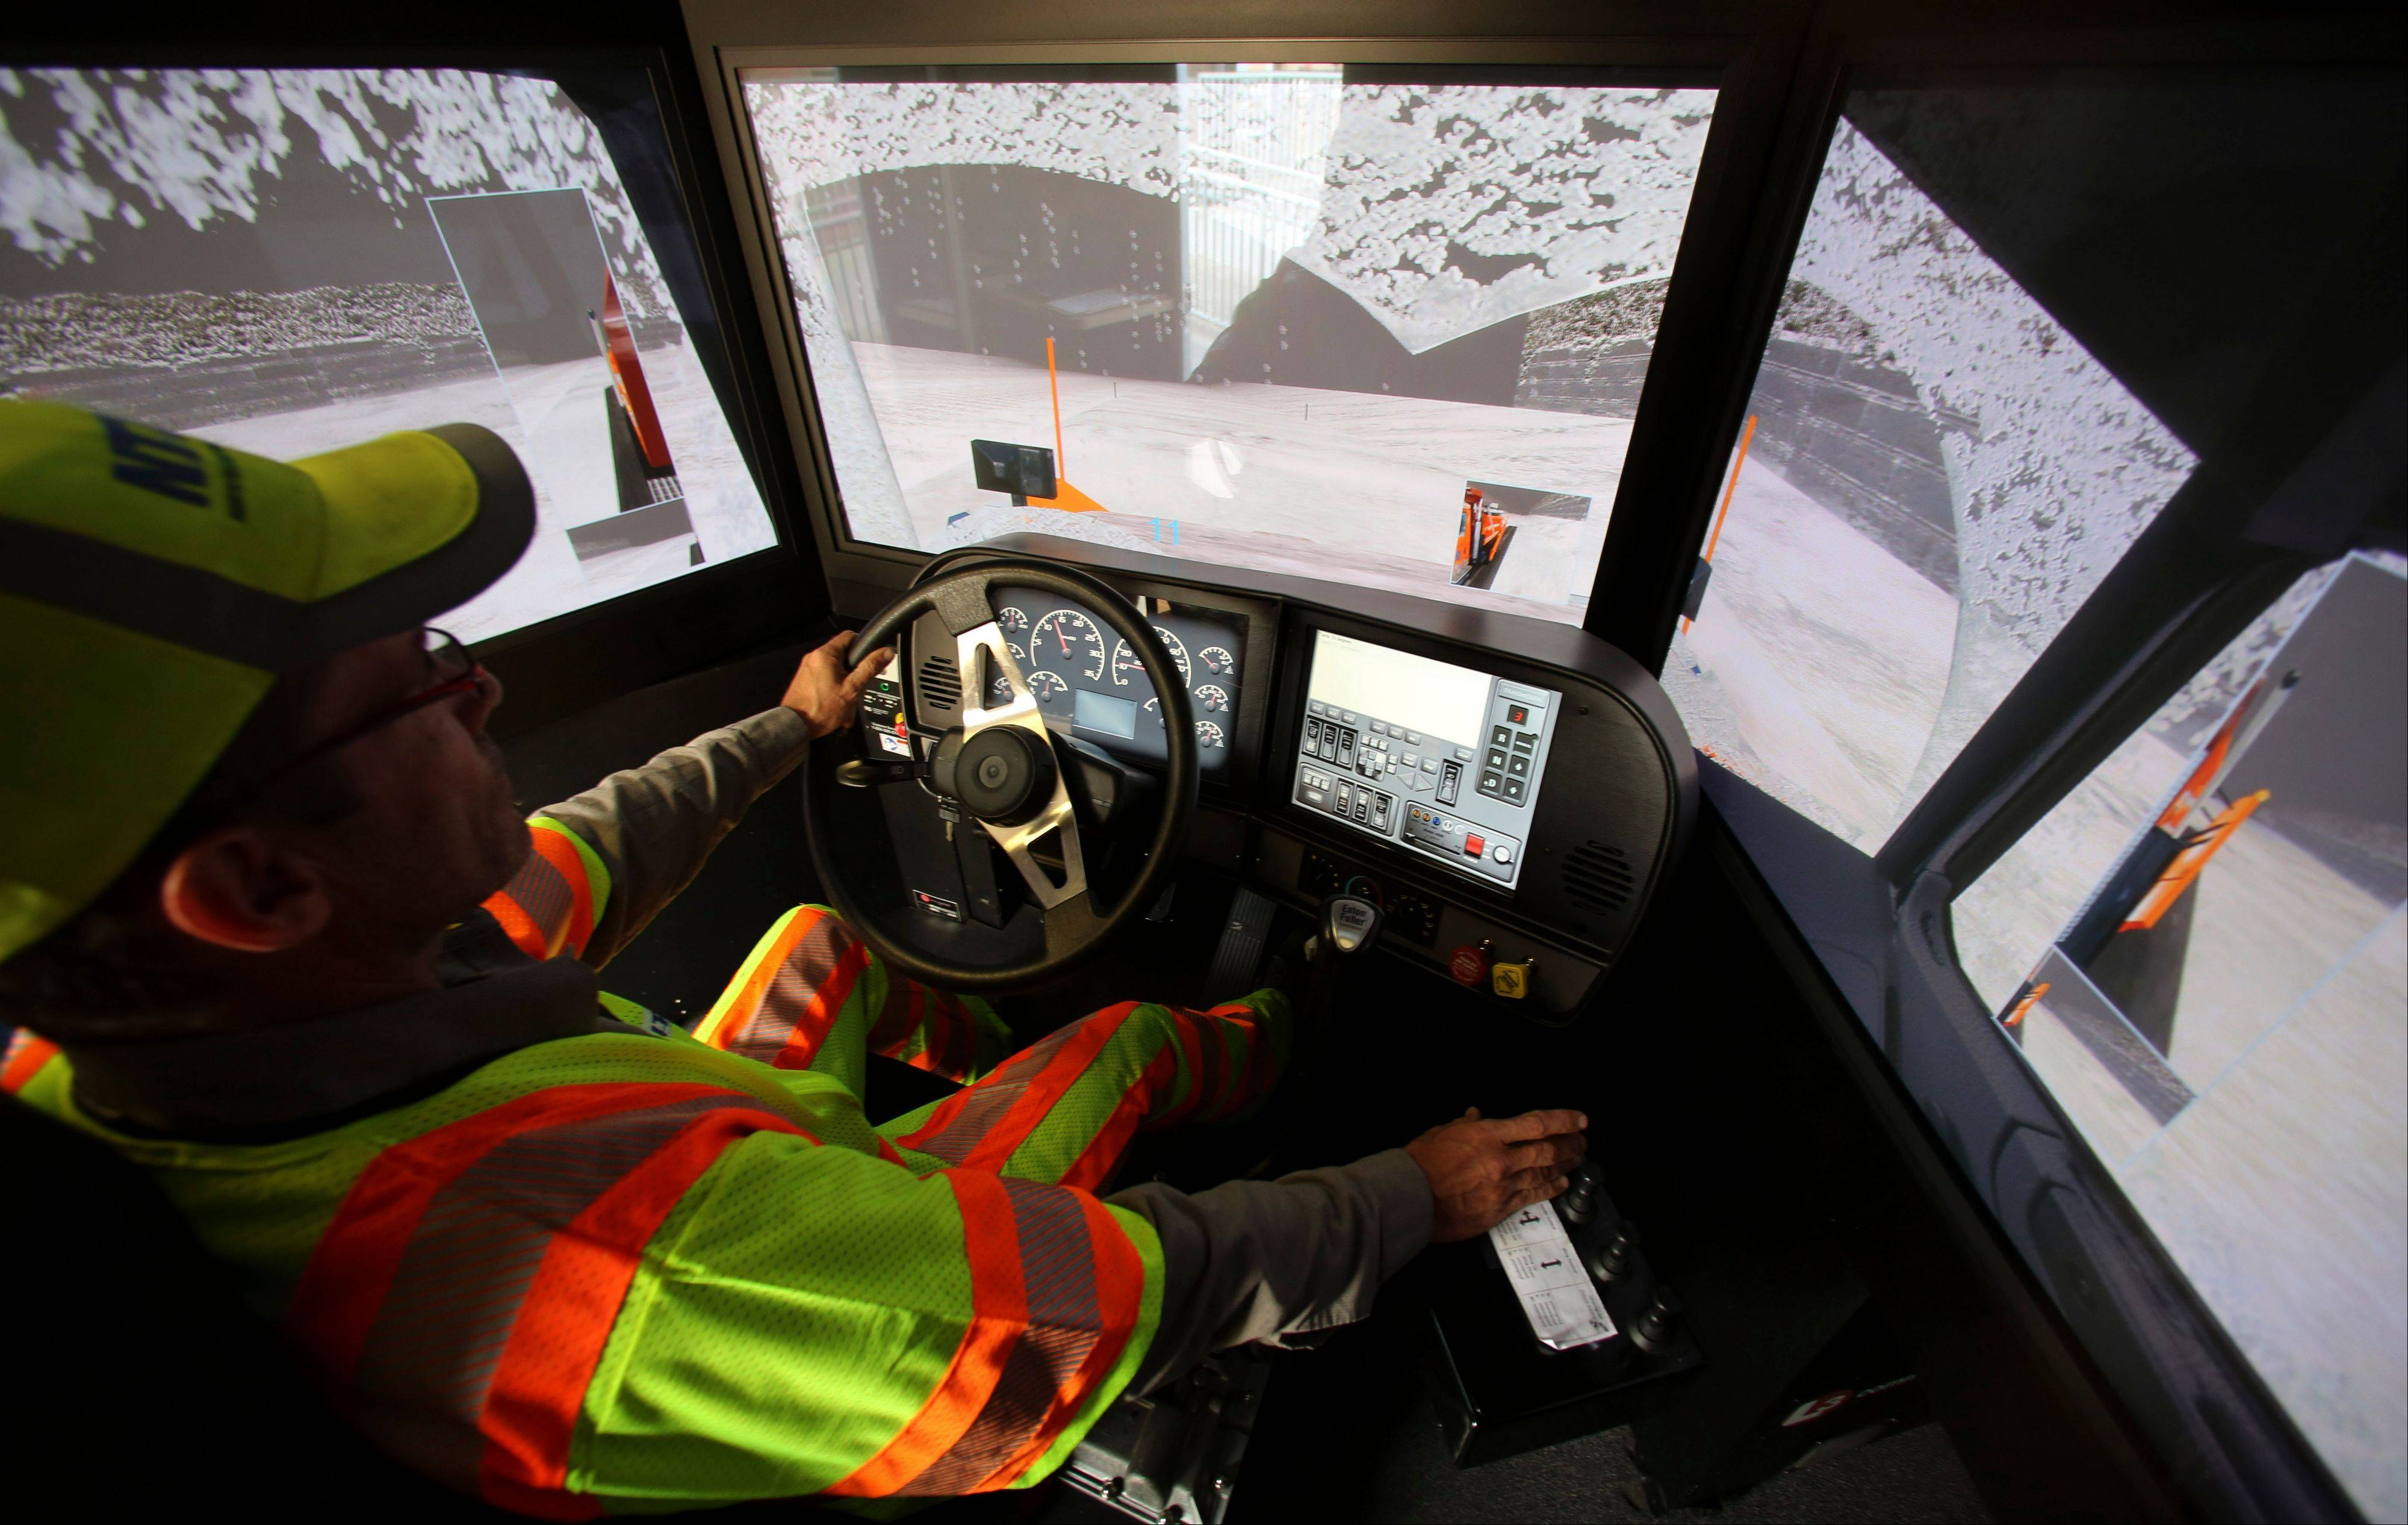 Driver Terence Mundt operates a snowplow simulator during a North Texas Tollway Authority training class in Plano, Texas. The NTTA is using the computer generated simulator to help snowplow operators become better at handling slick roads in a region not used to ice and snow. Highway officials in at least nine states are using the sophisticated simulator to give plow drivers a chance to practice snow removal in any weather. It works like a video game, recreating slick pavement, poor visibility and even children or animals bolting across the road.